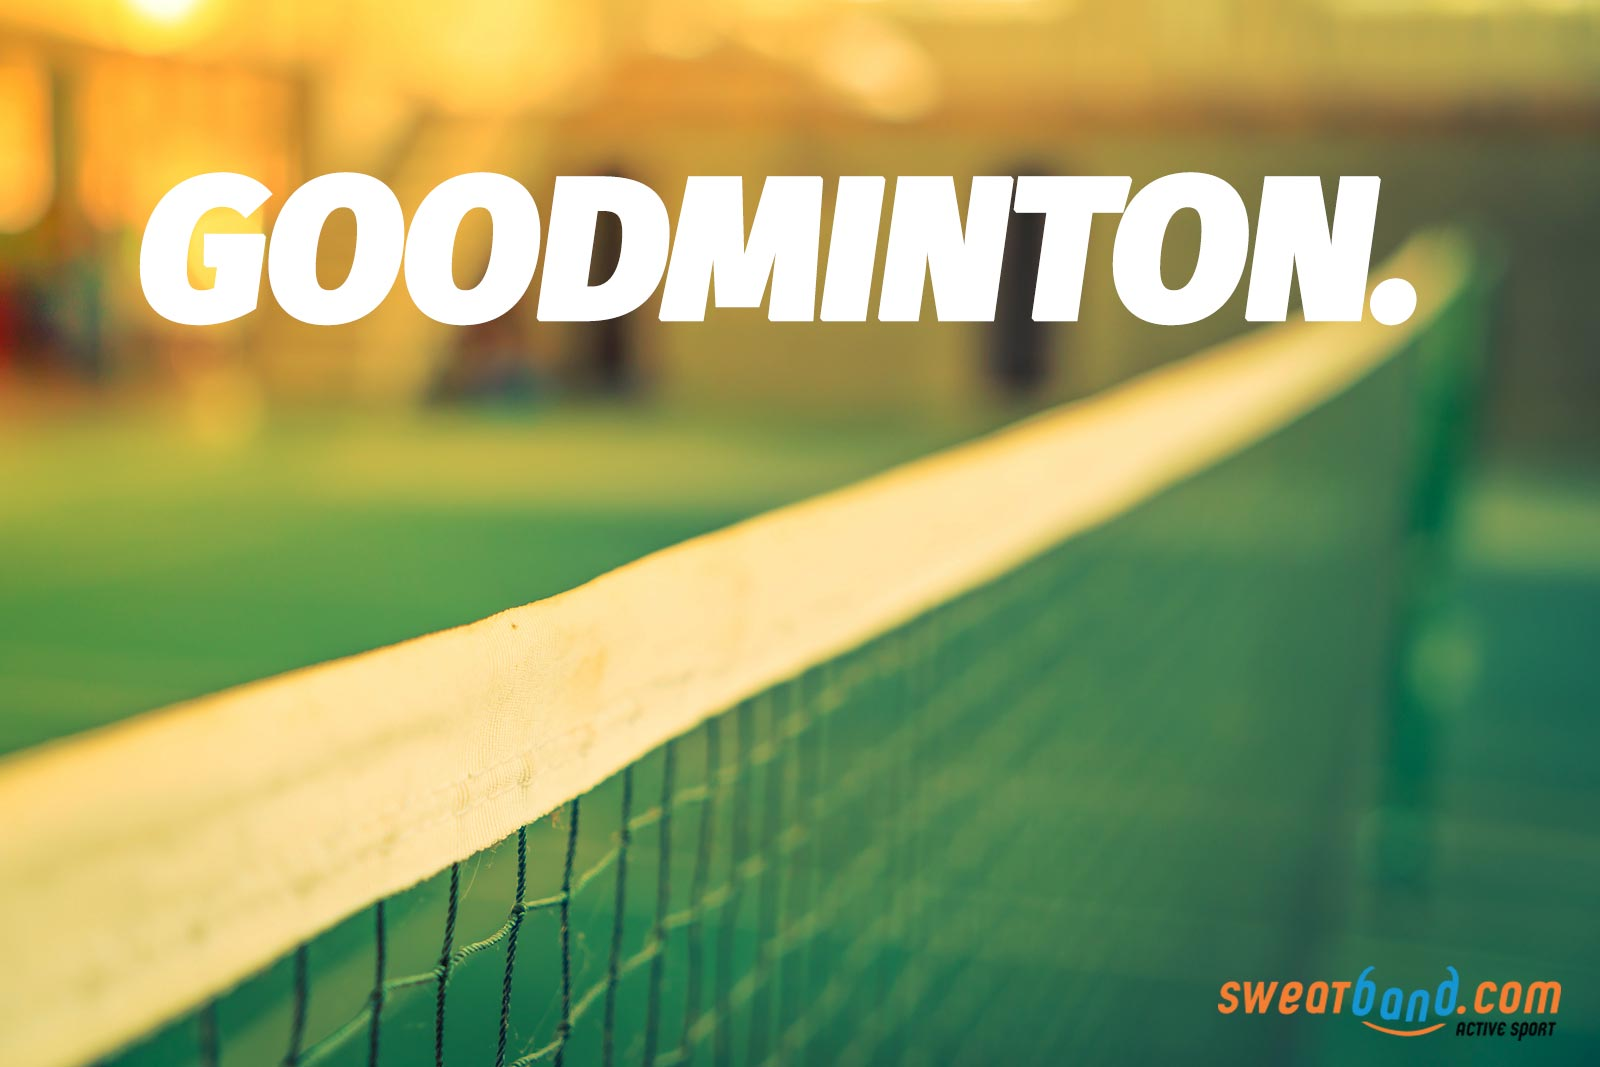 Time to think of badminton as GOODminton!